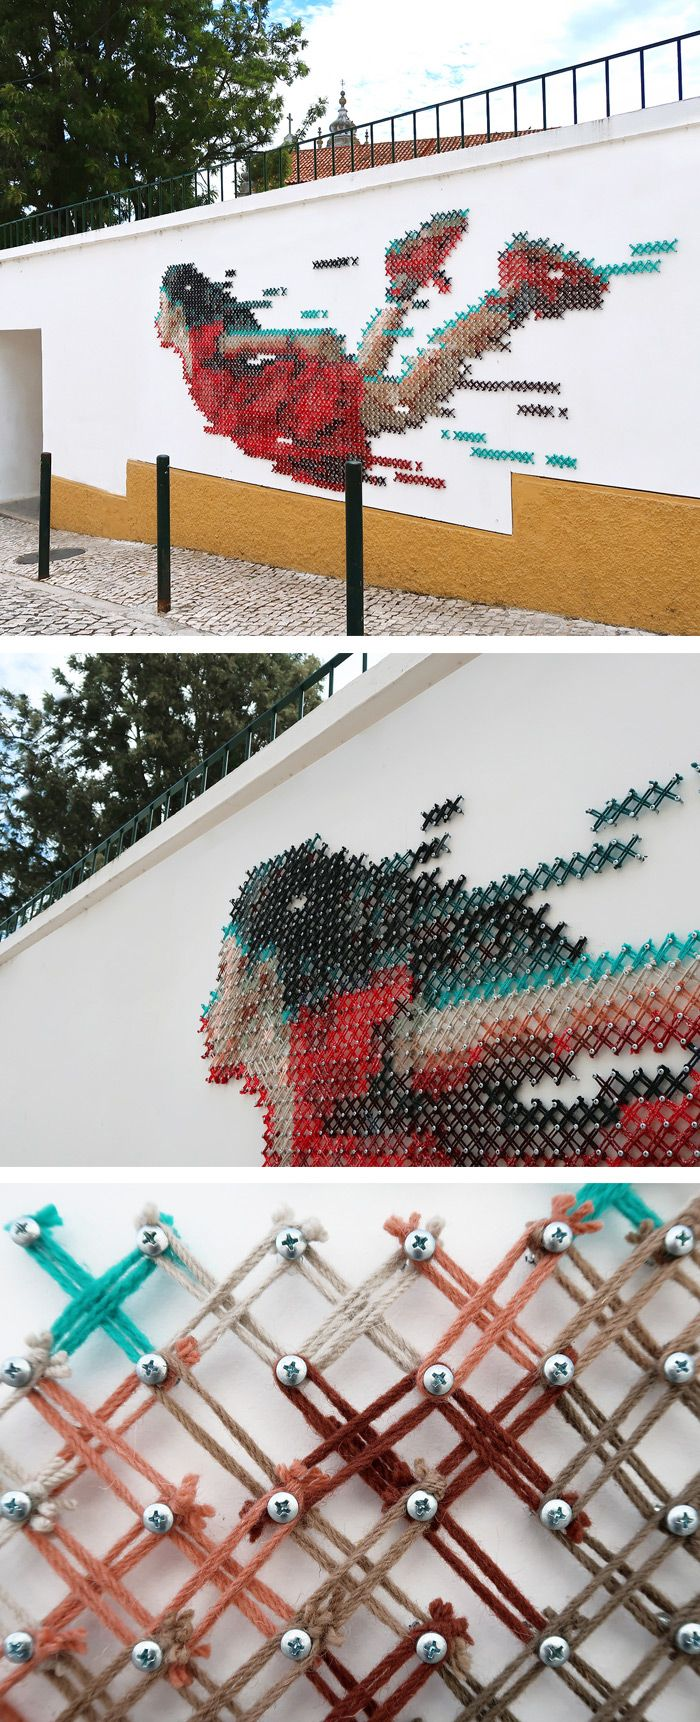 A Student Lost in the Easy Freedom of Youth Depicted in a Cross-Stitch Mural by Aheneah